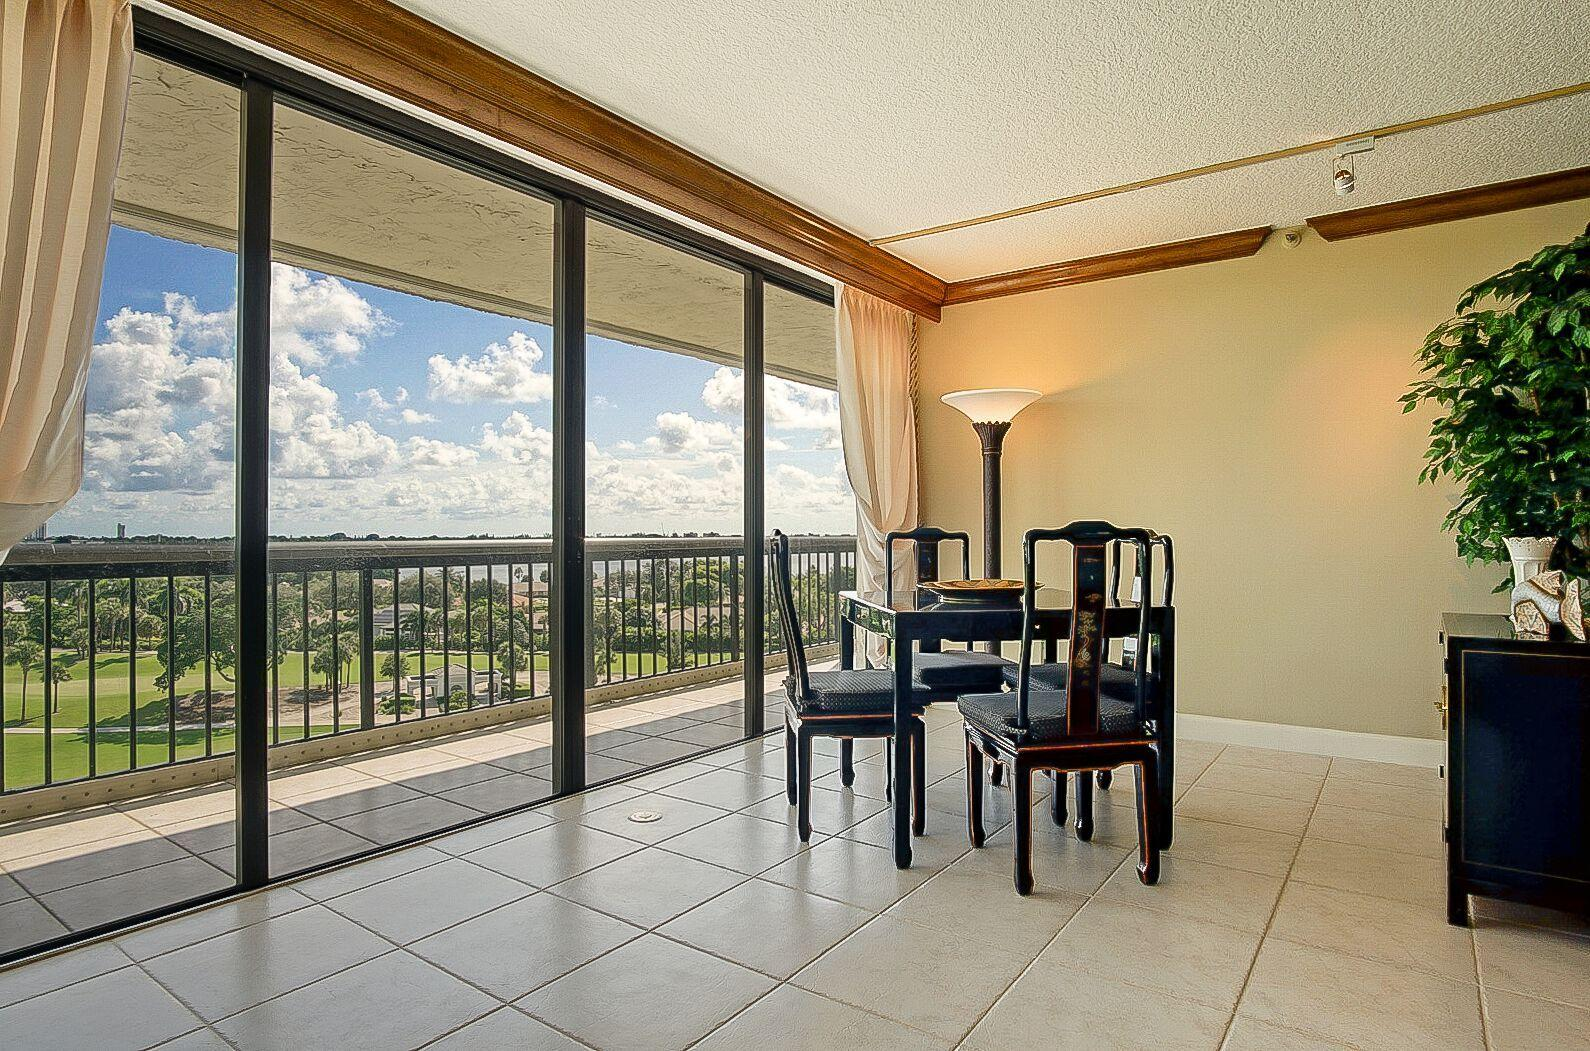 1900 Consulate Place, West Palm Beach, Florida 33401, 3 Bedrooms Bedrooms, ,2 BathroomsBathrooms,Residential,For Sale,Consulate,RX-10555456